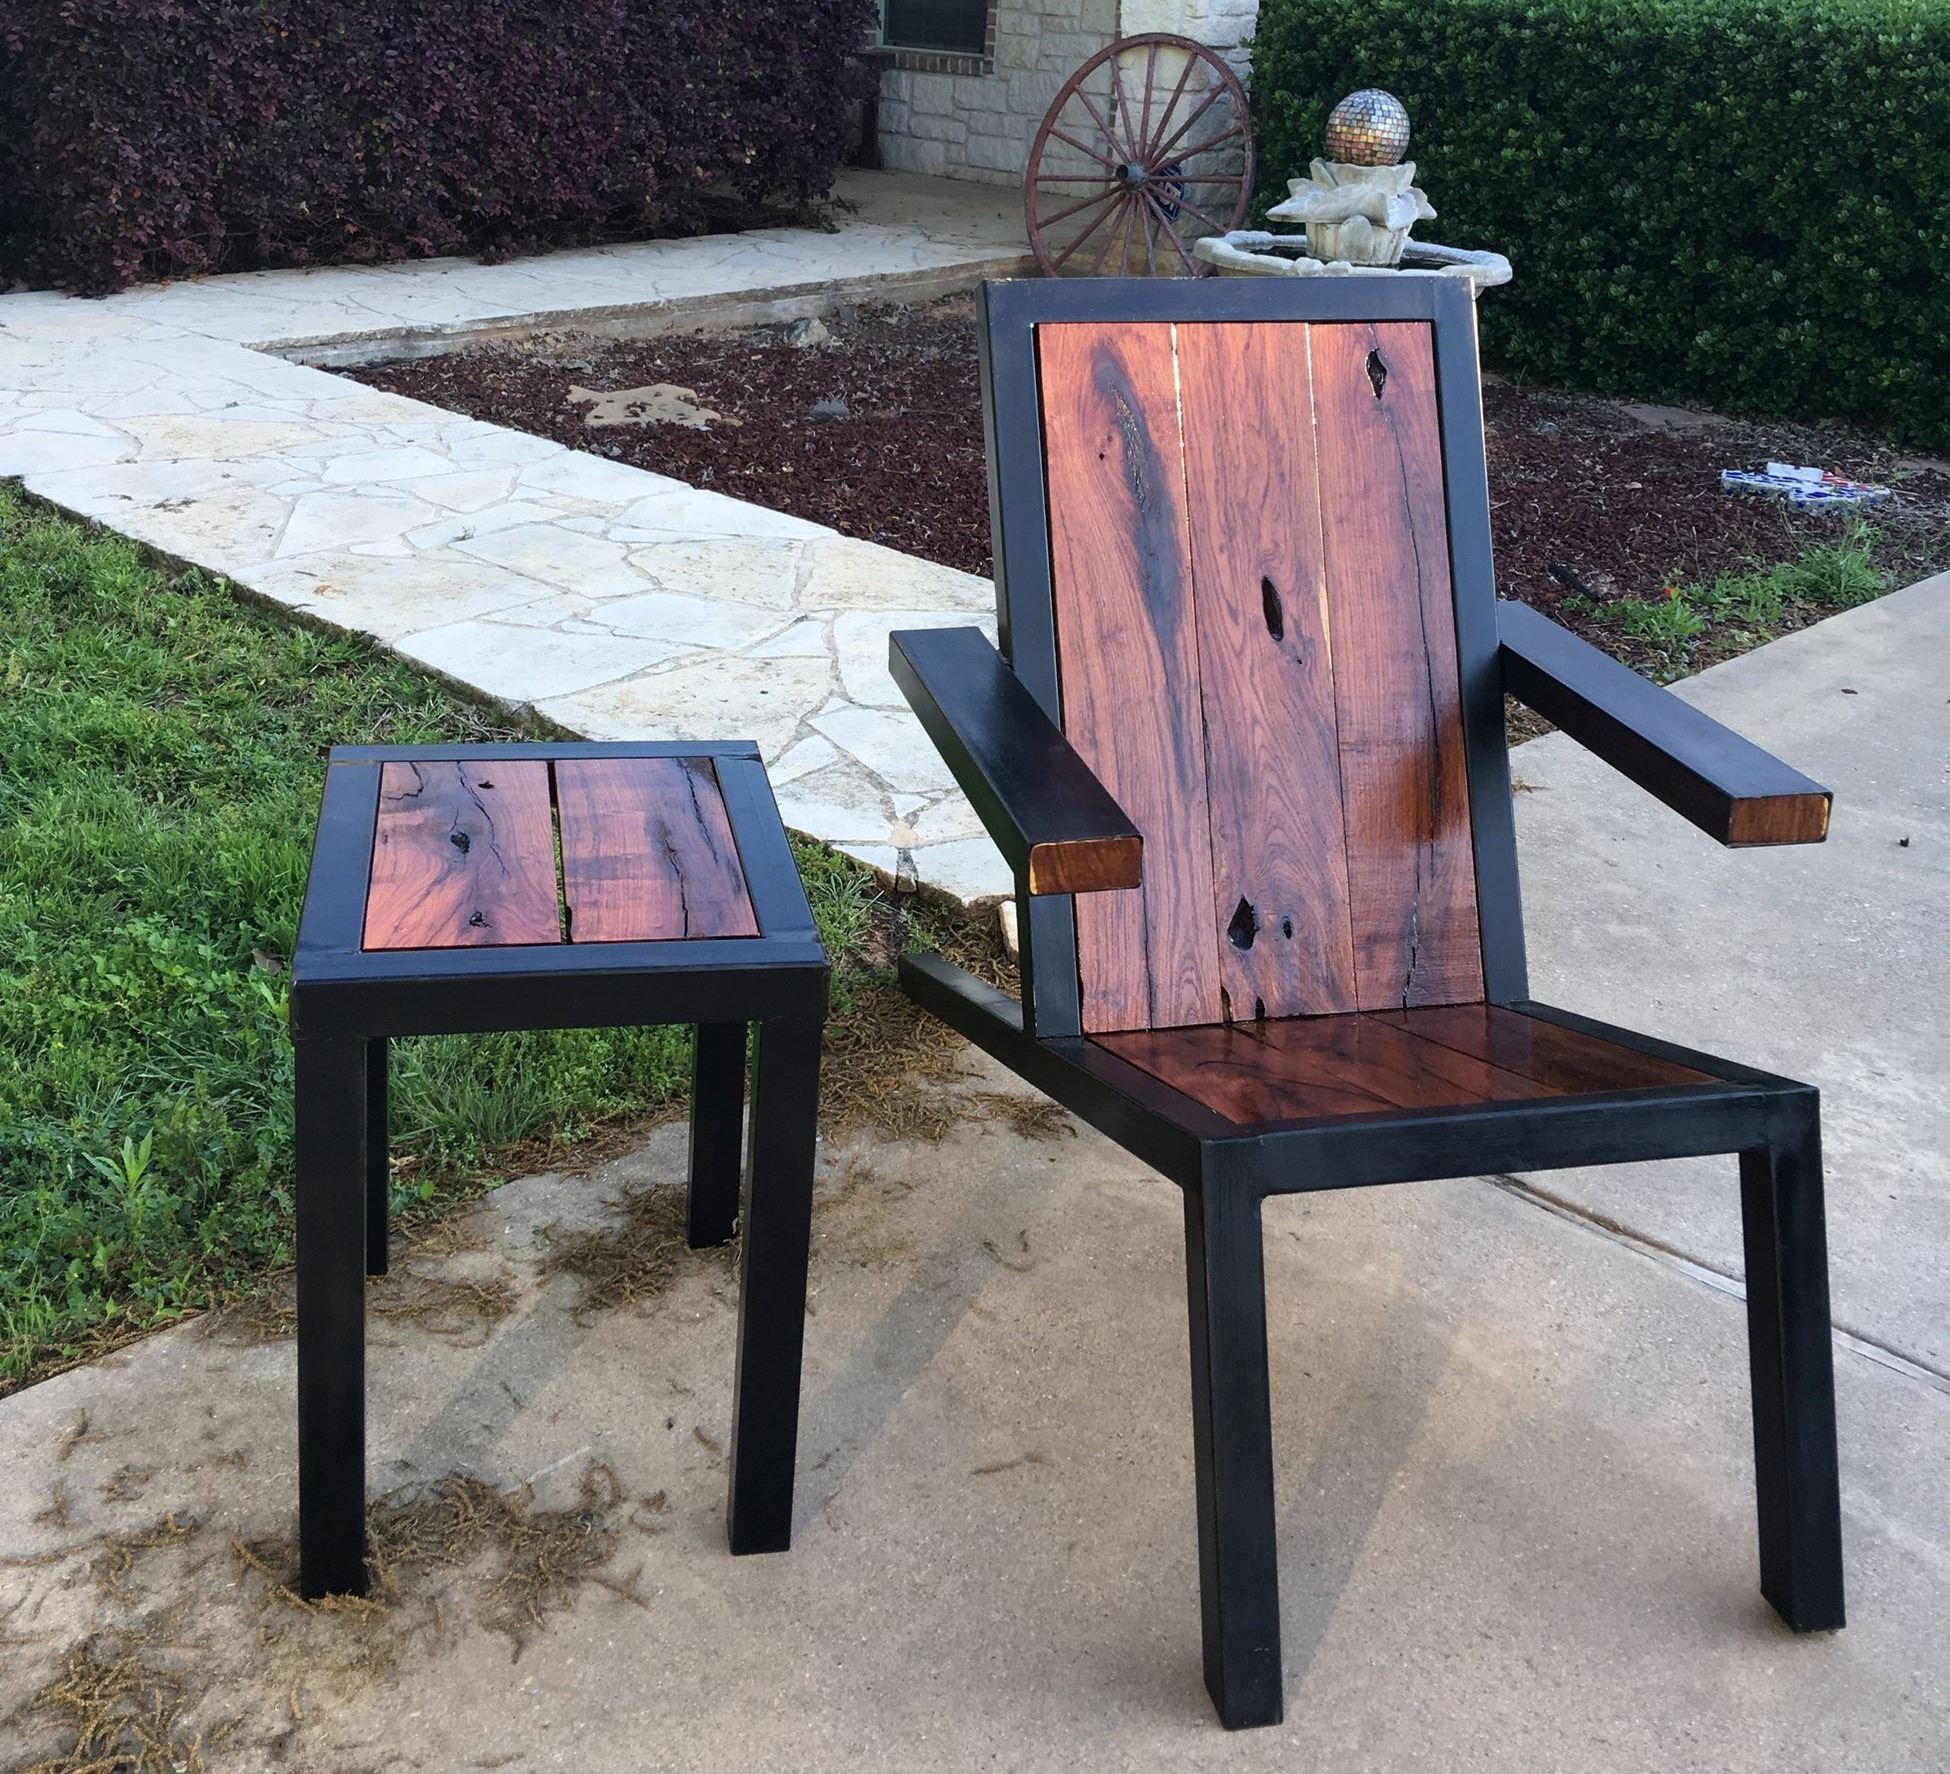 Krafts Log Works table and chair